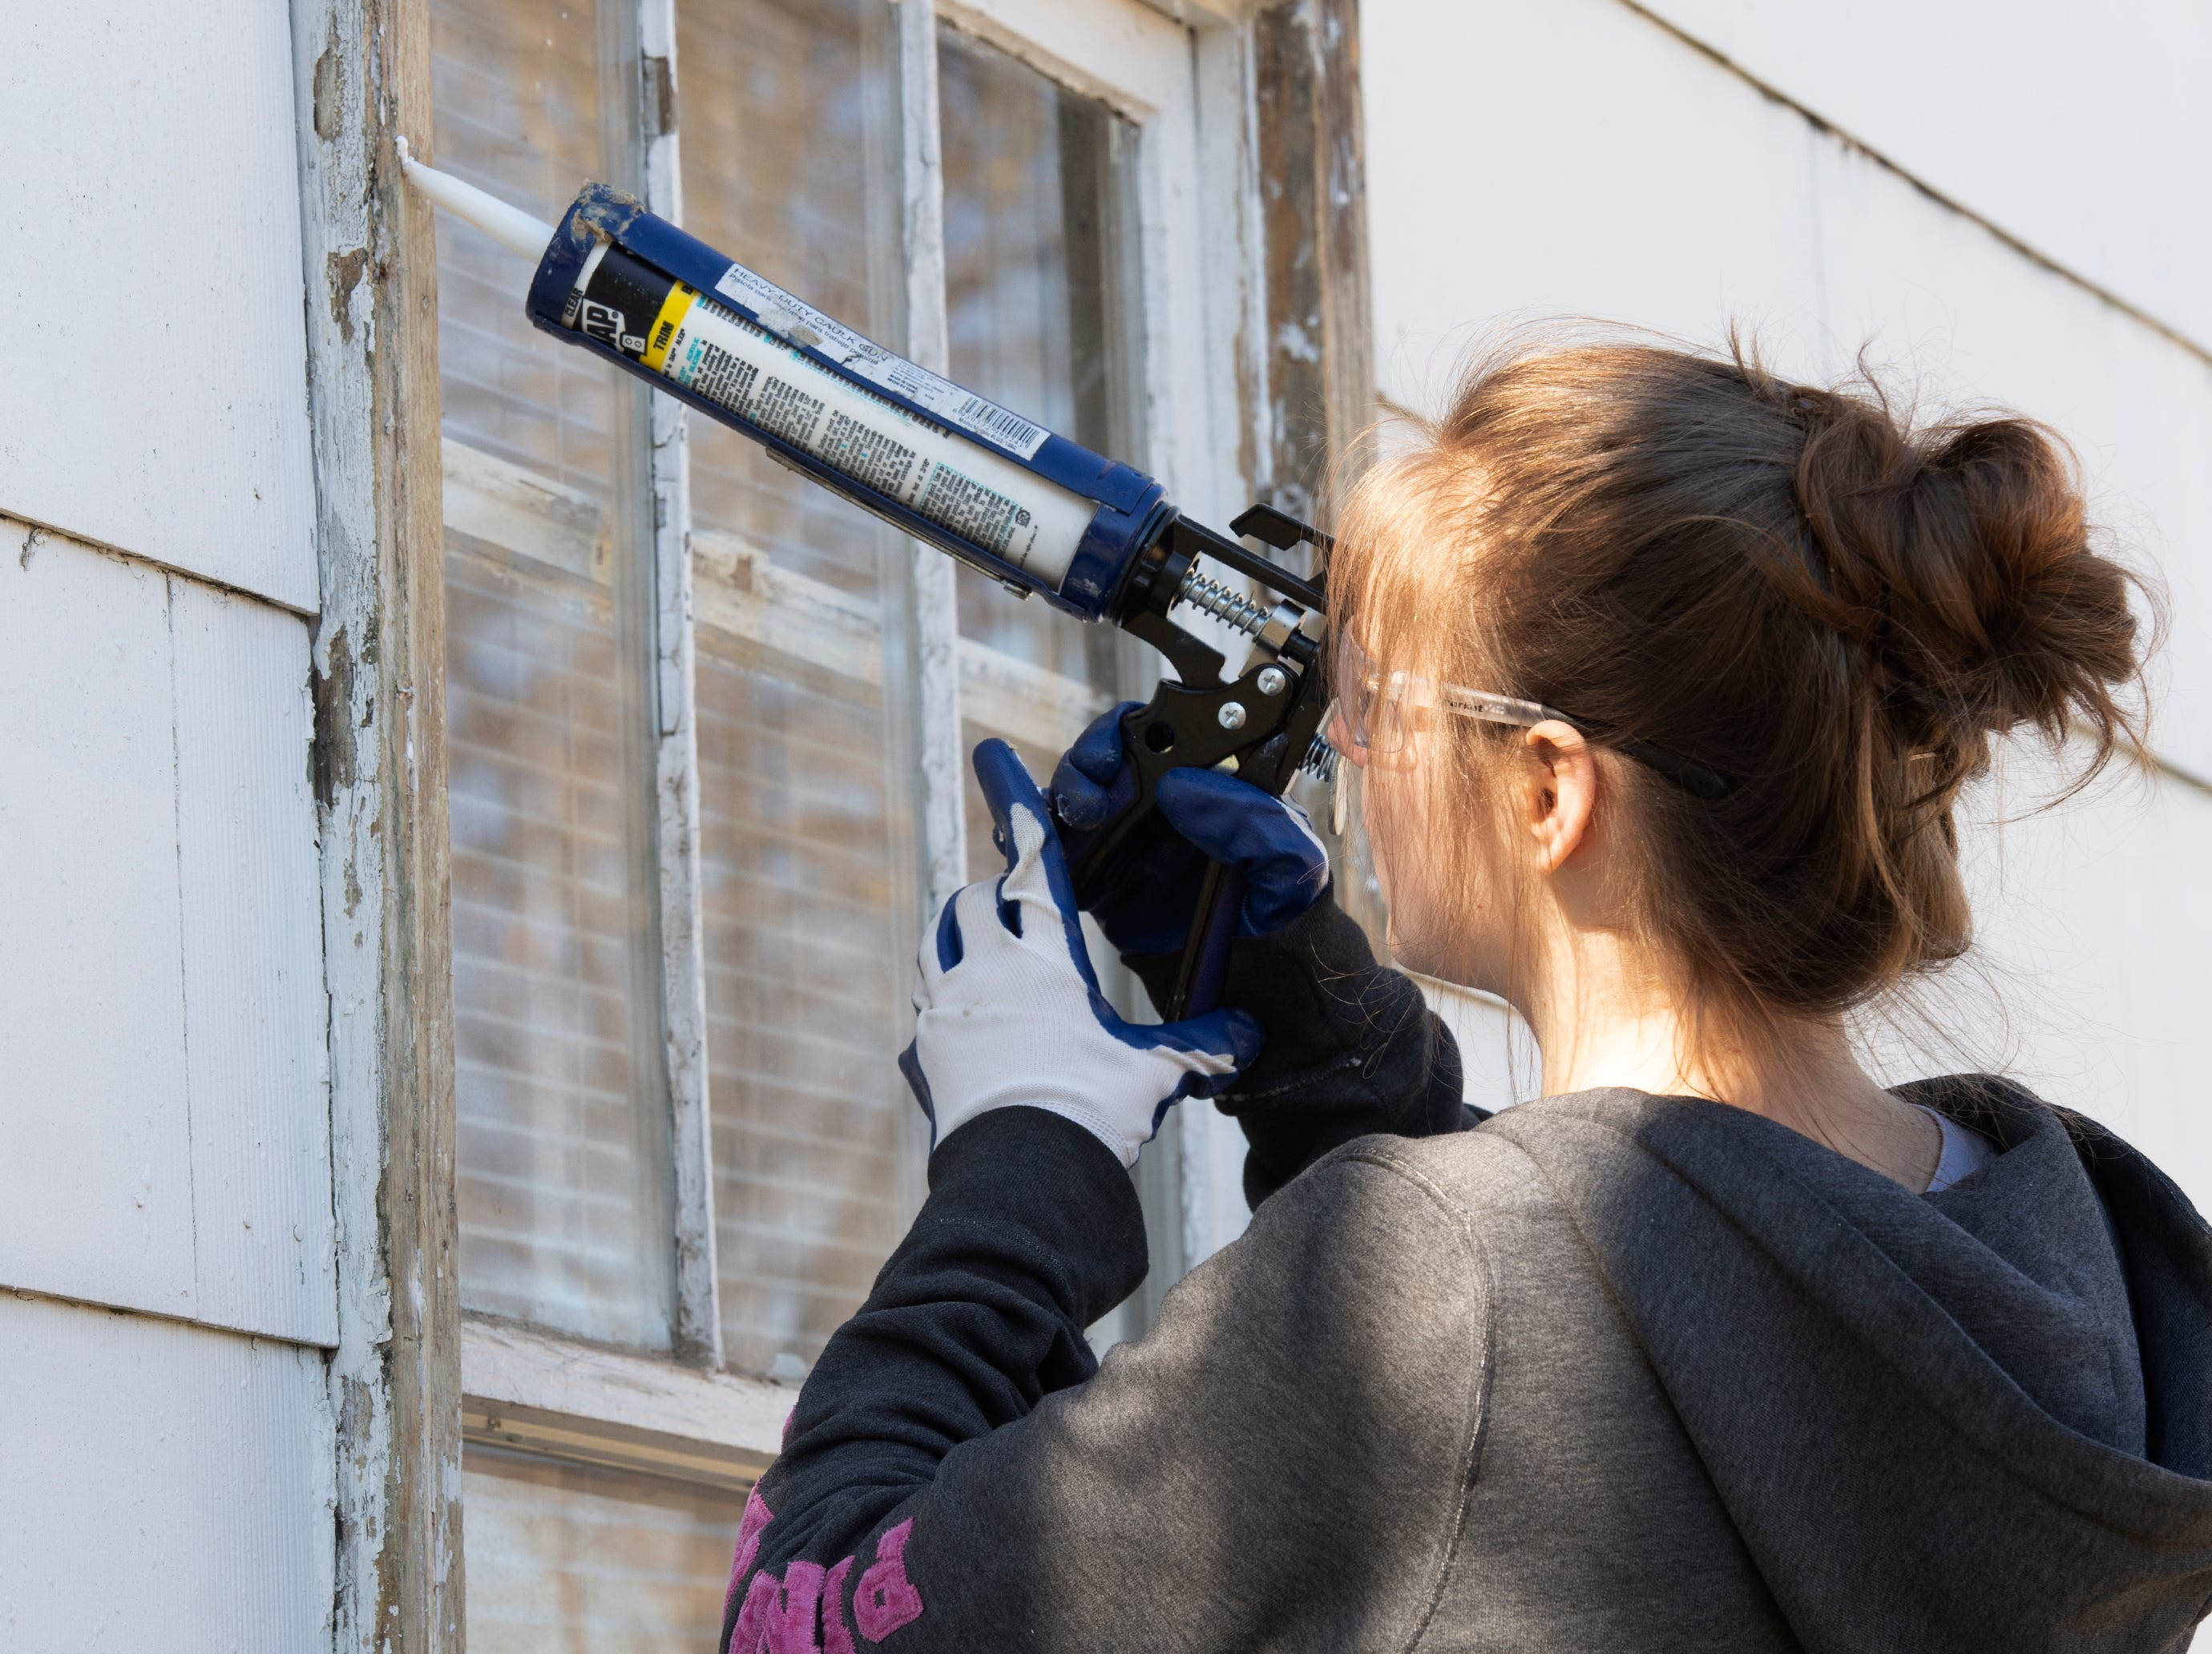 Bob Jones University sophomore Rebekah Stevens seals the windows on a home on Durham Street in Greenville on Martin Luther King, Jr. Day Monday, Jan. 21, 2019.